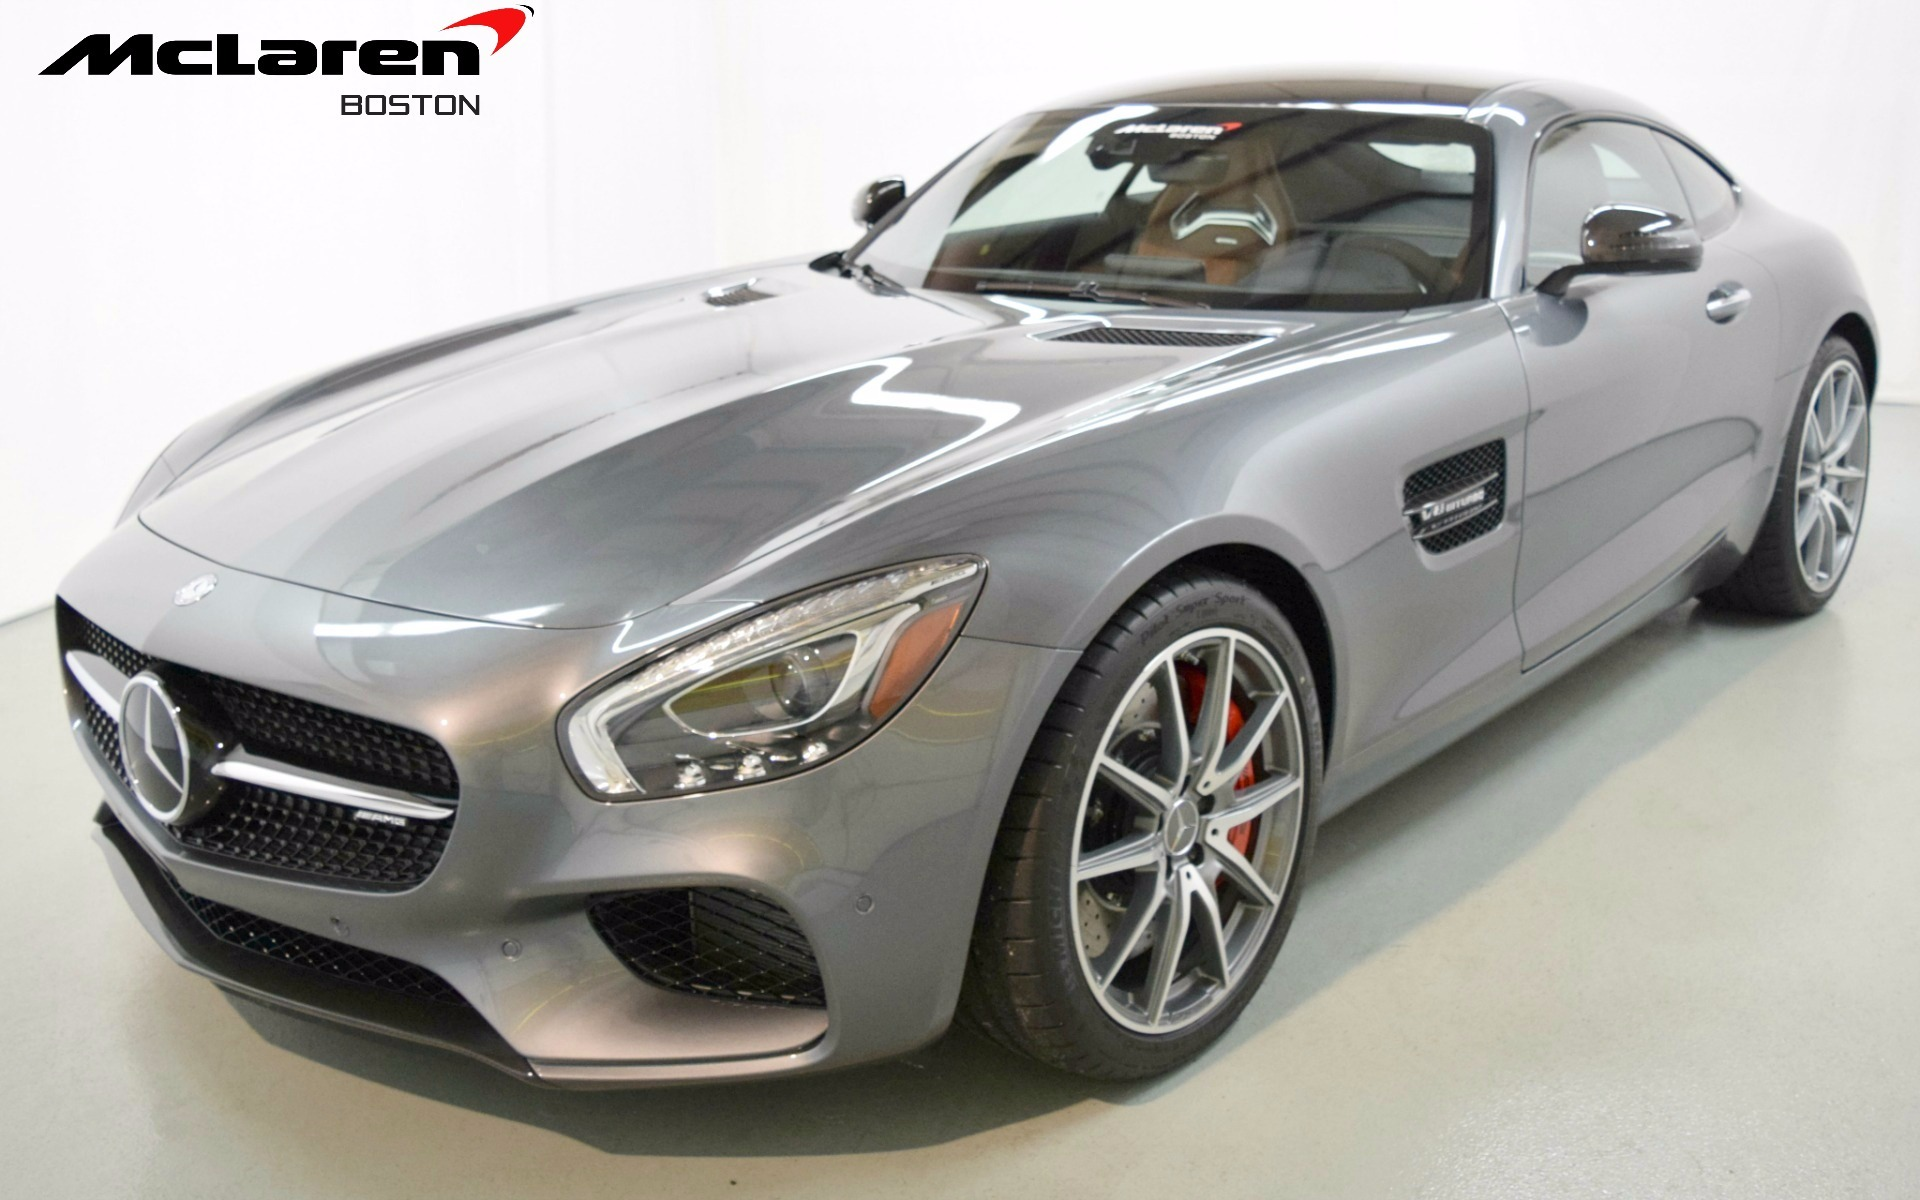 2016 mercedes benz amg gt s for sale in norwell ma 006515 mclaren boston. Black Bedroom Furniture Sets. Home Design Ideas